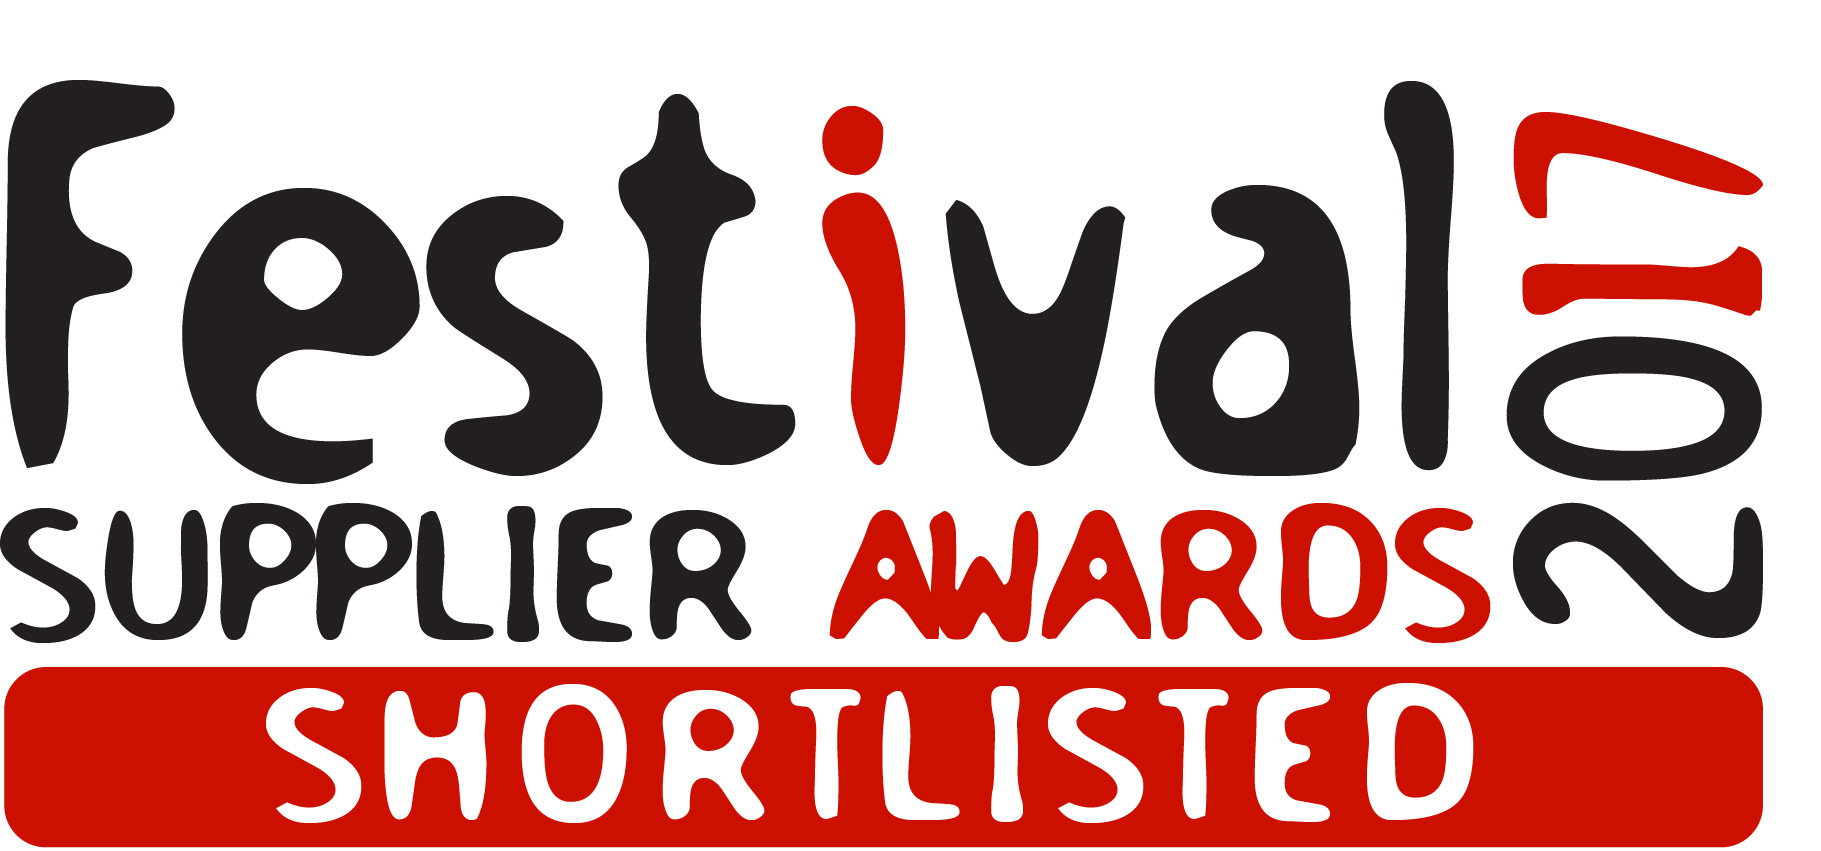 Festival Supplier Awards 2017